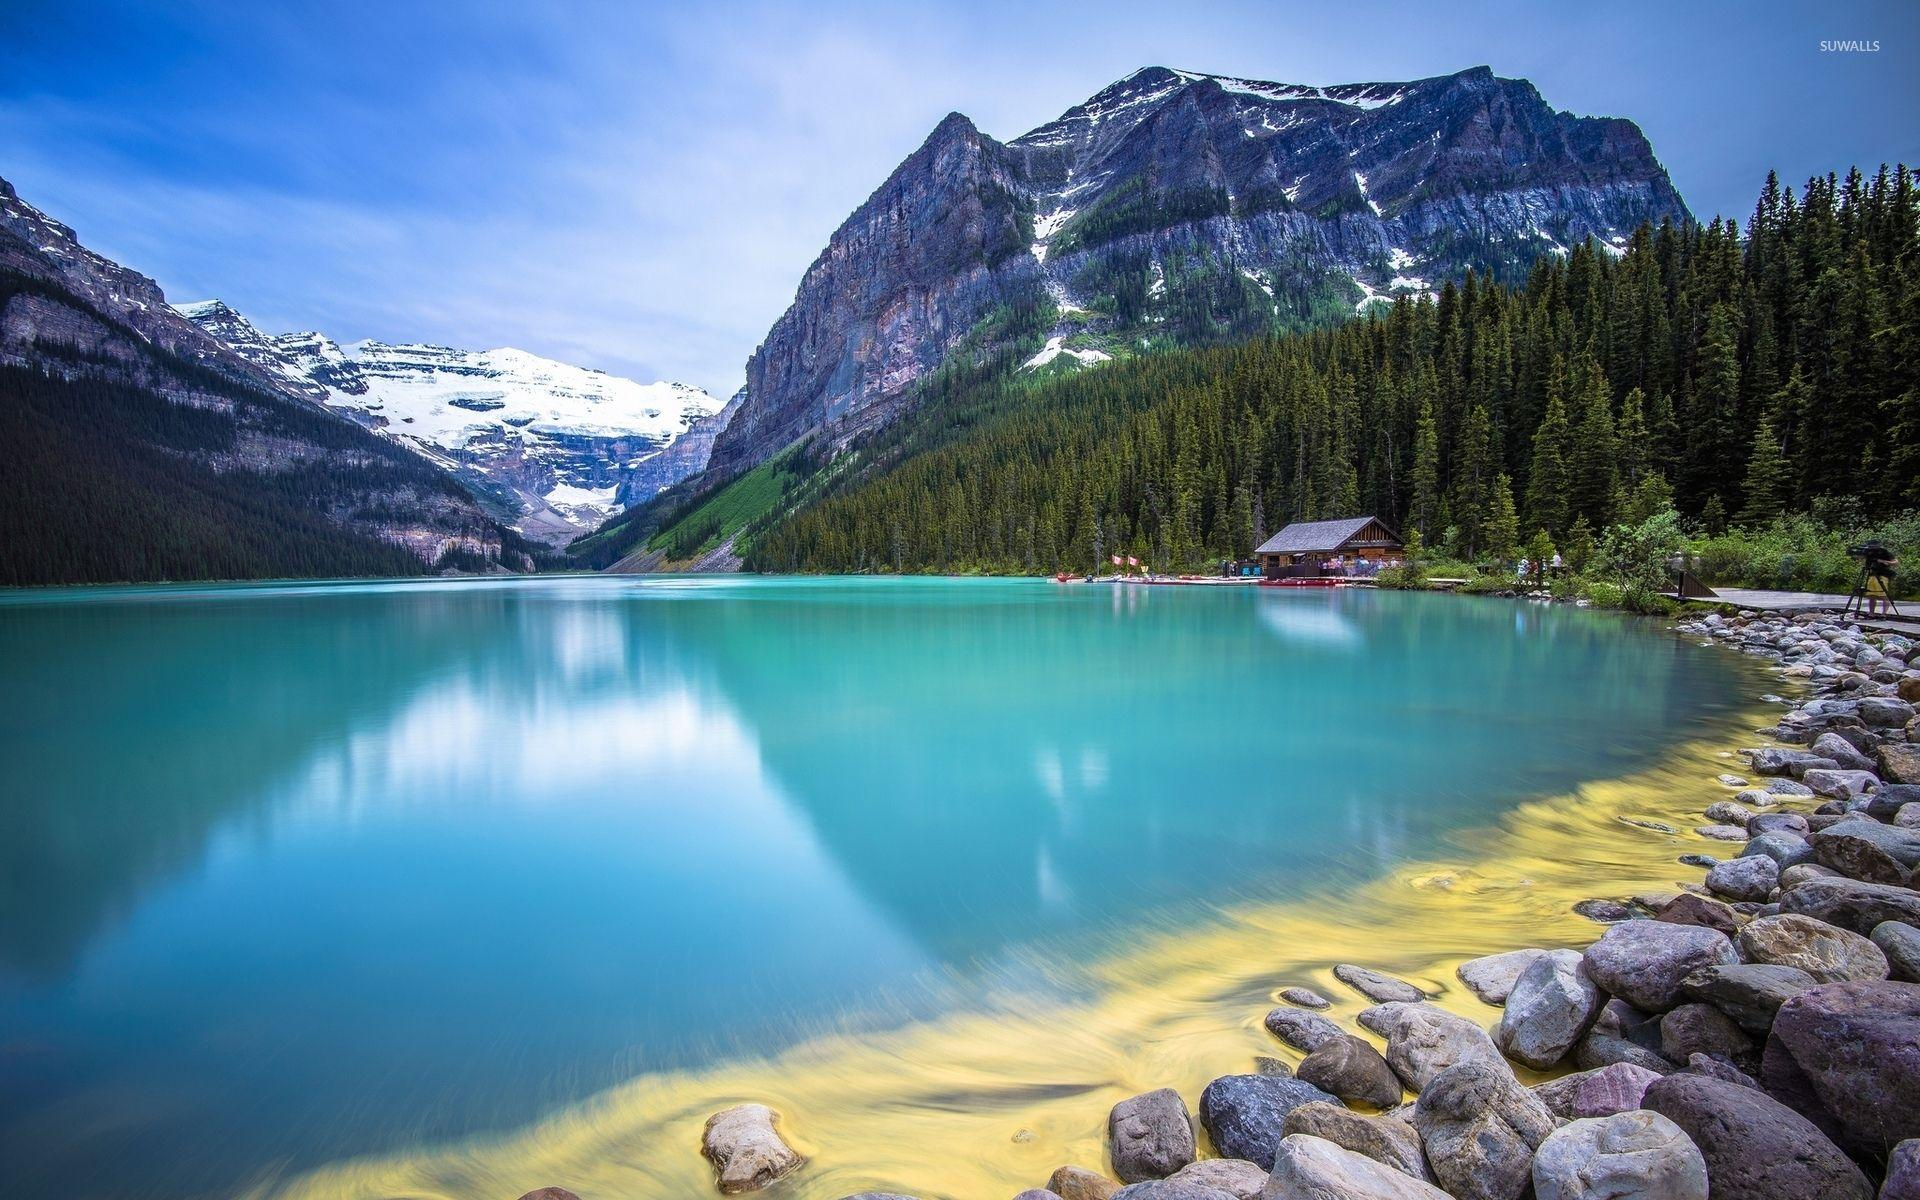 Amazing turquoise water lake guarded by rocky mountains wallpapers